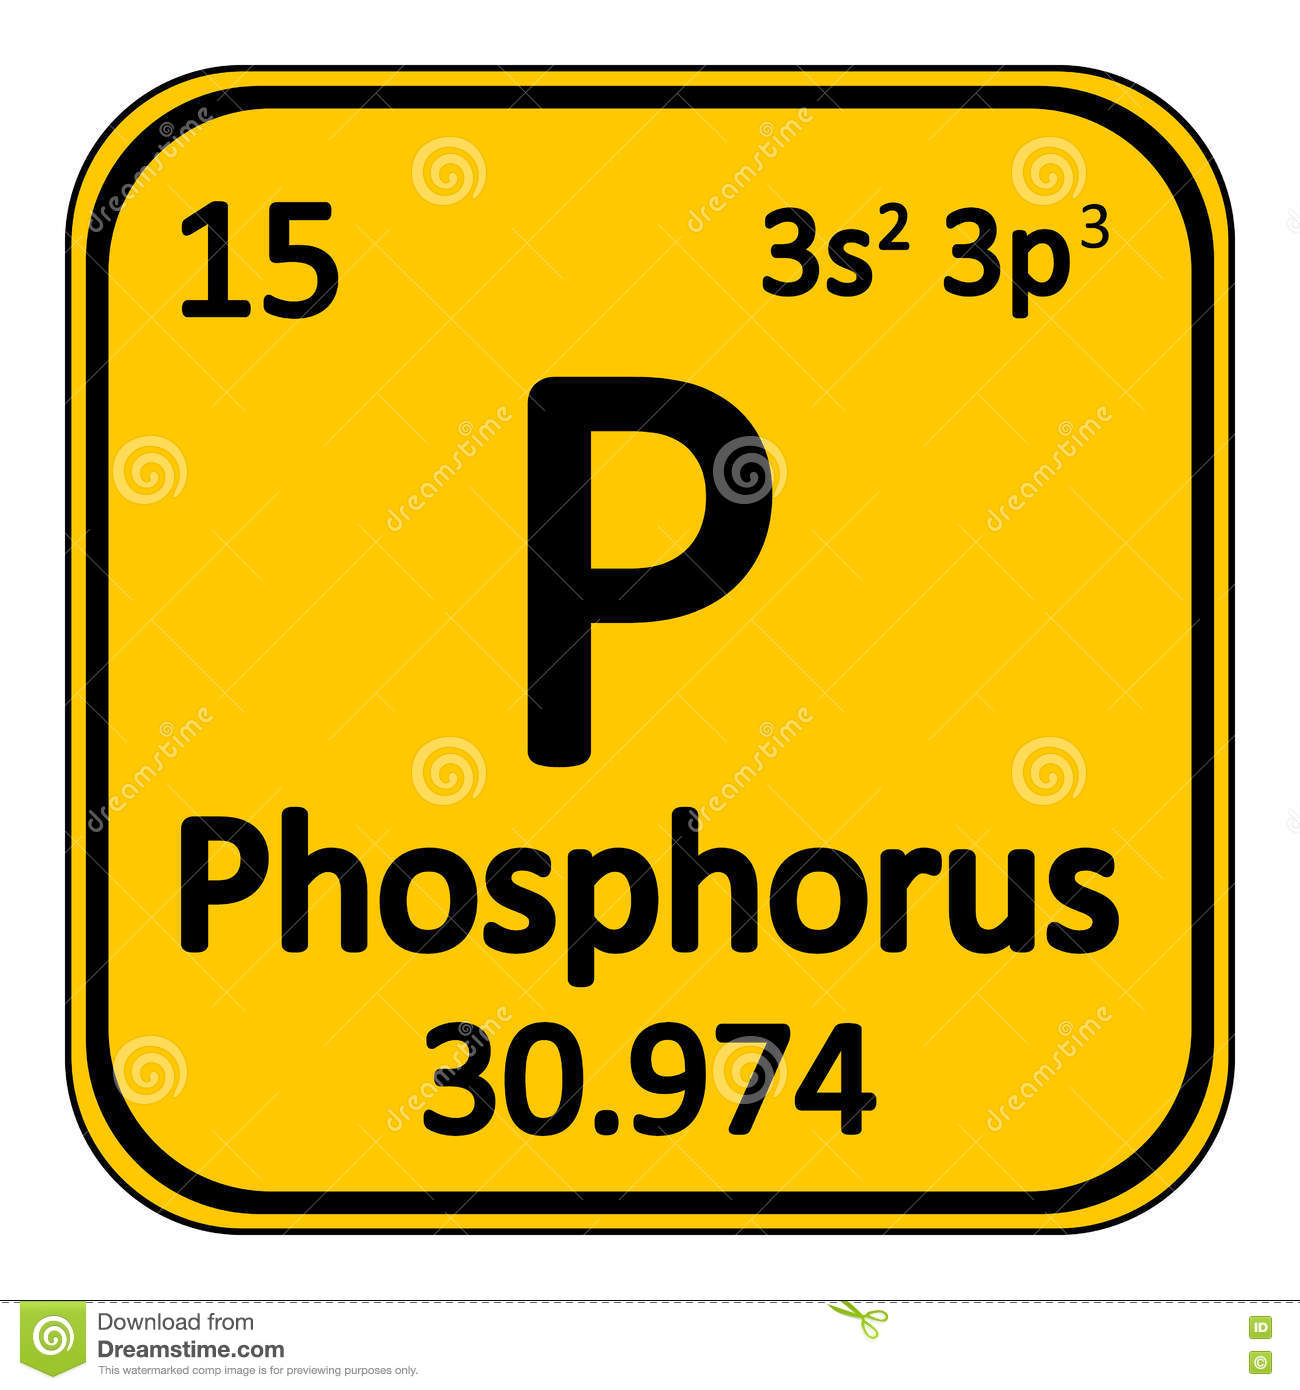 Periodic table element phosphorus icon stock illustration image periodic table element phosphorus icon gamestrikefo Image collections